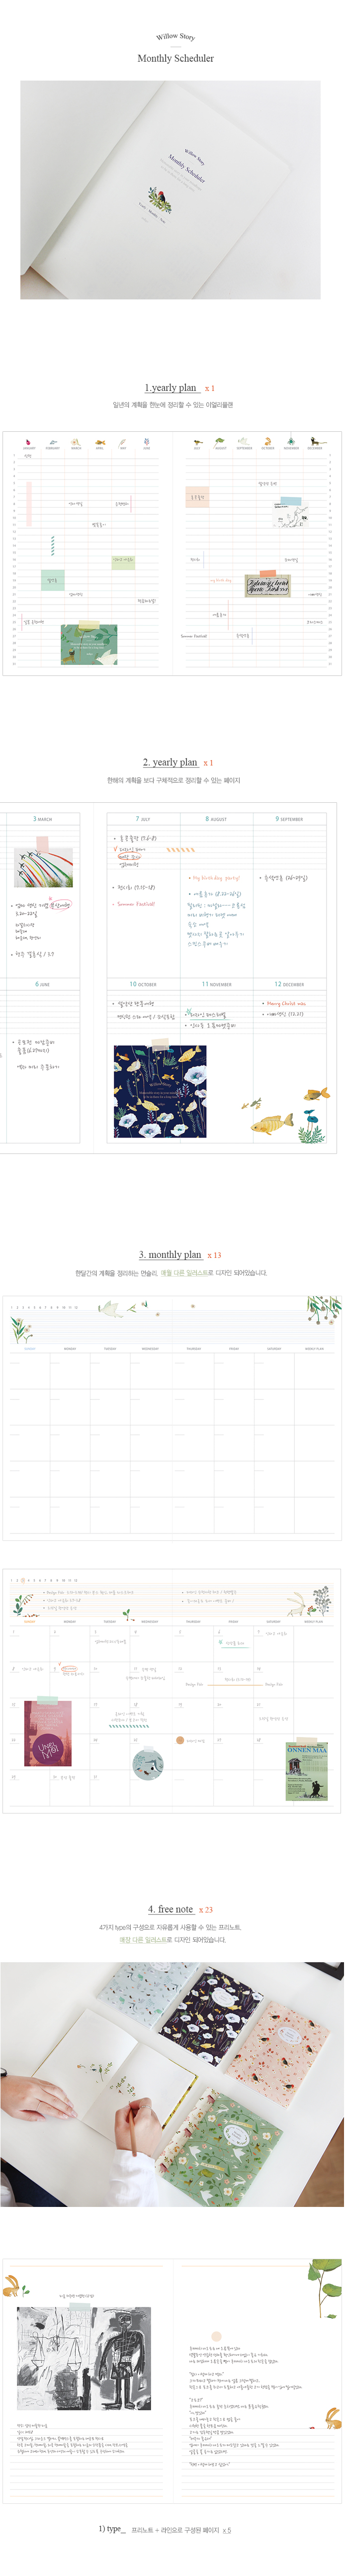 wind in the willows 2015 scheduler [2015 scheduler, 2015 schedulers, diary schedule]